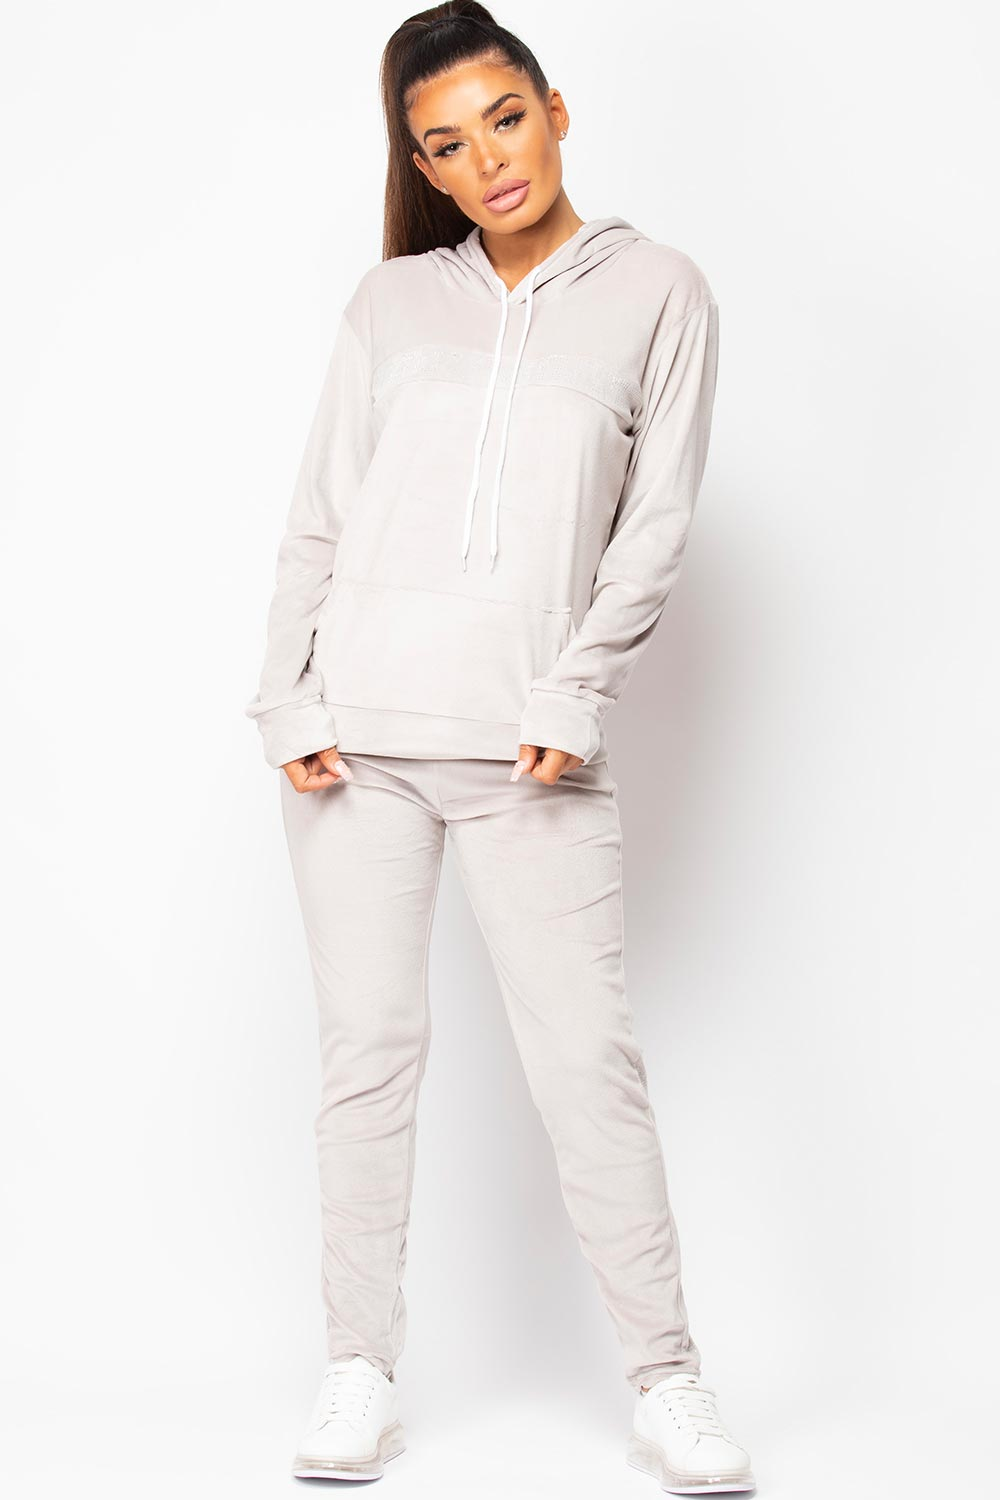 velour loungewear set grey womens